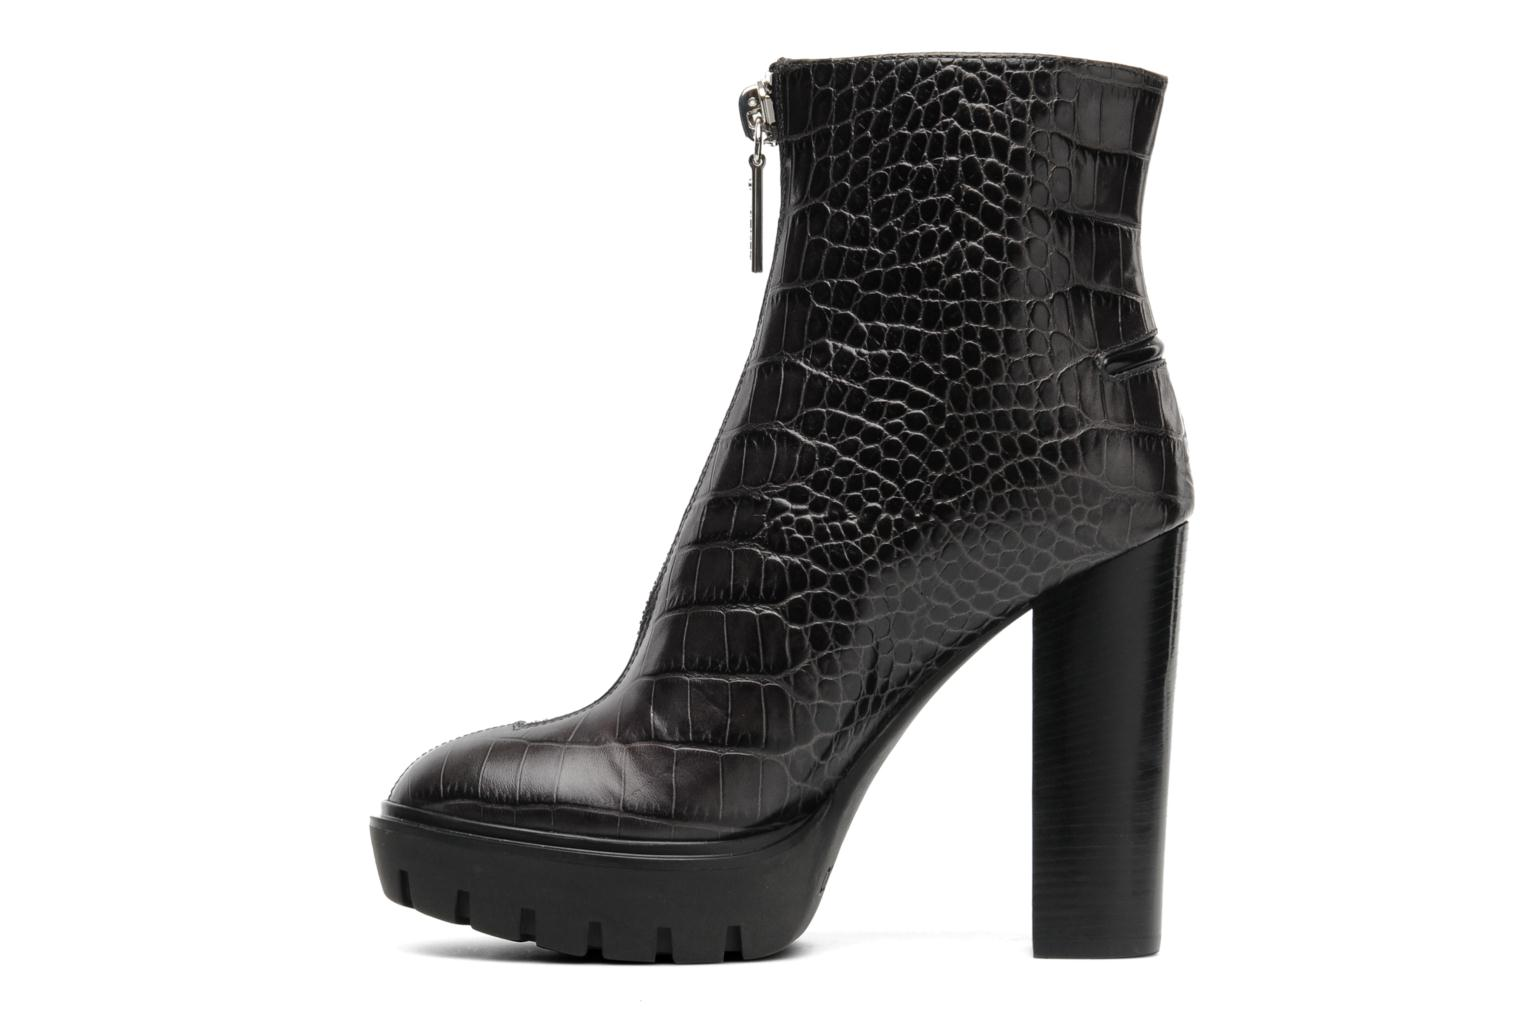 Carina Croco Black